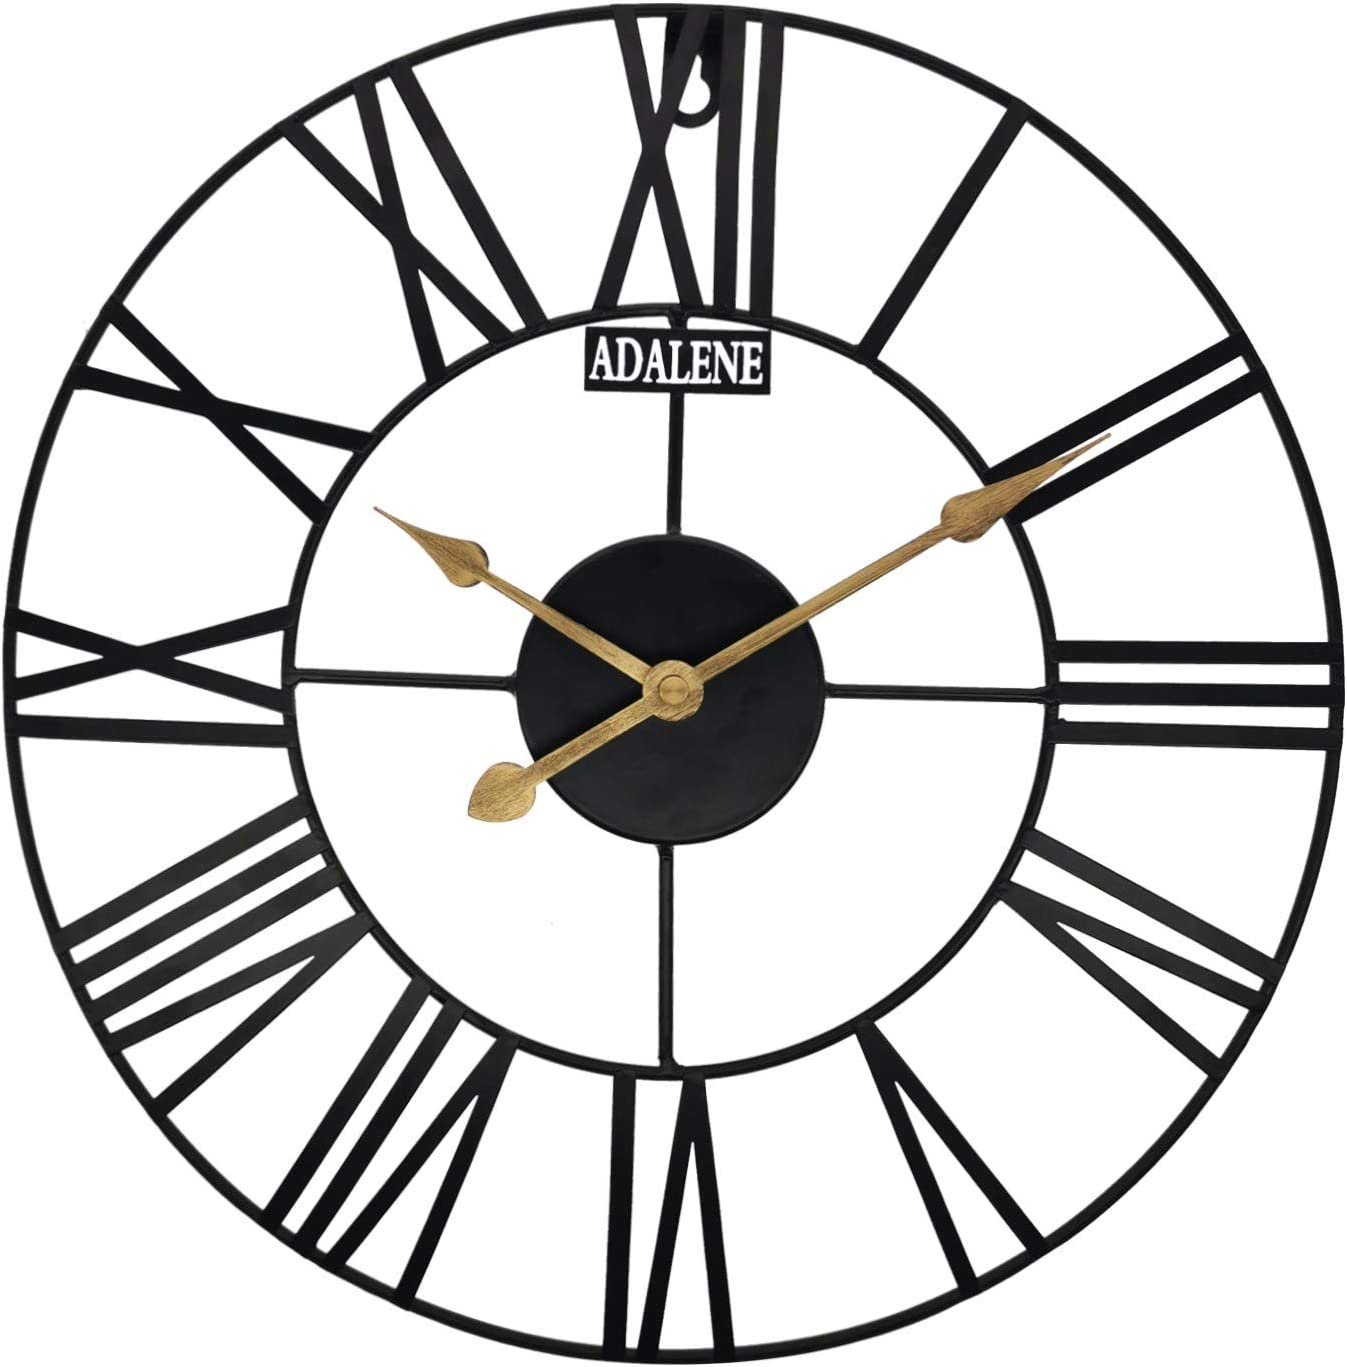 Adalene Wall Clocks Battery Operated 14 Inch Large Farmhouse Wall Clock, Vintage Rustic Wall Clock, Roman Numeral Numbers, Decorative Retro Large Outdoor Clock, Metal Wall Clocks for Living Room Décor